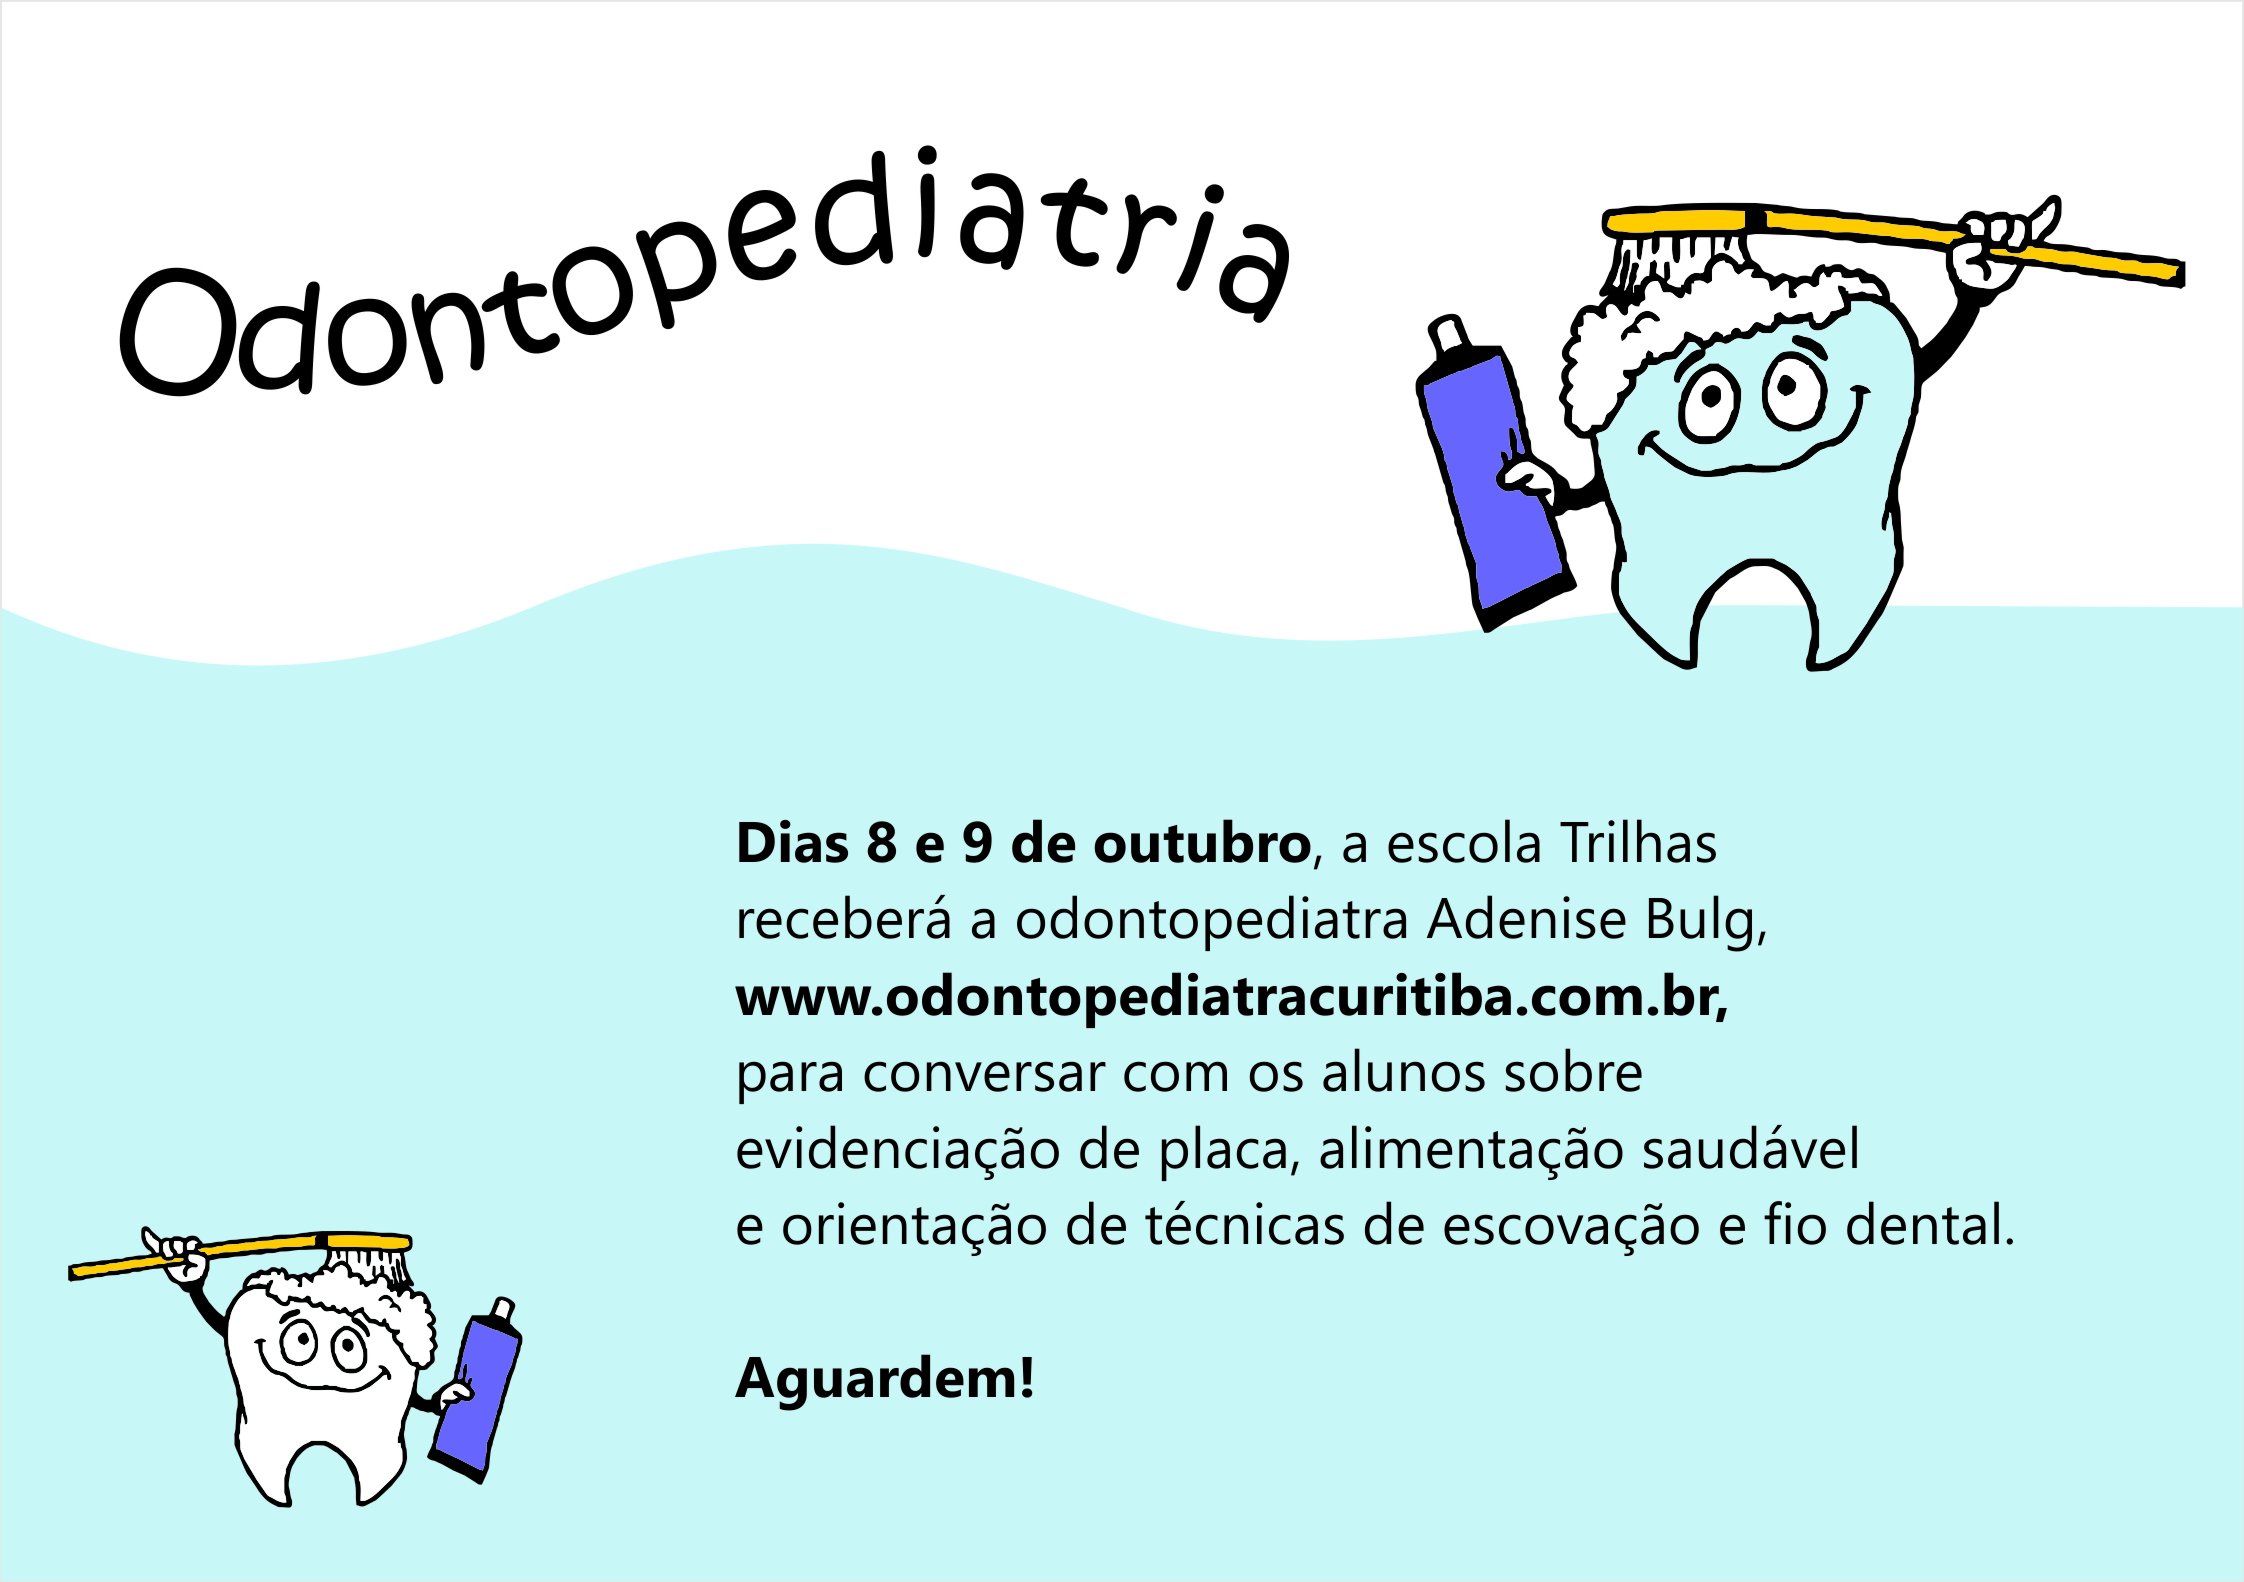 trilhas odontologia 2015 flyer virtual